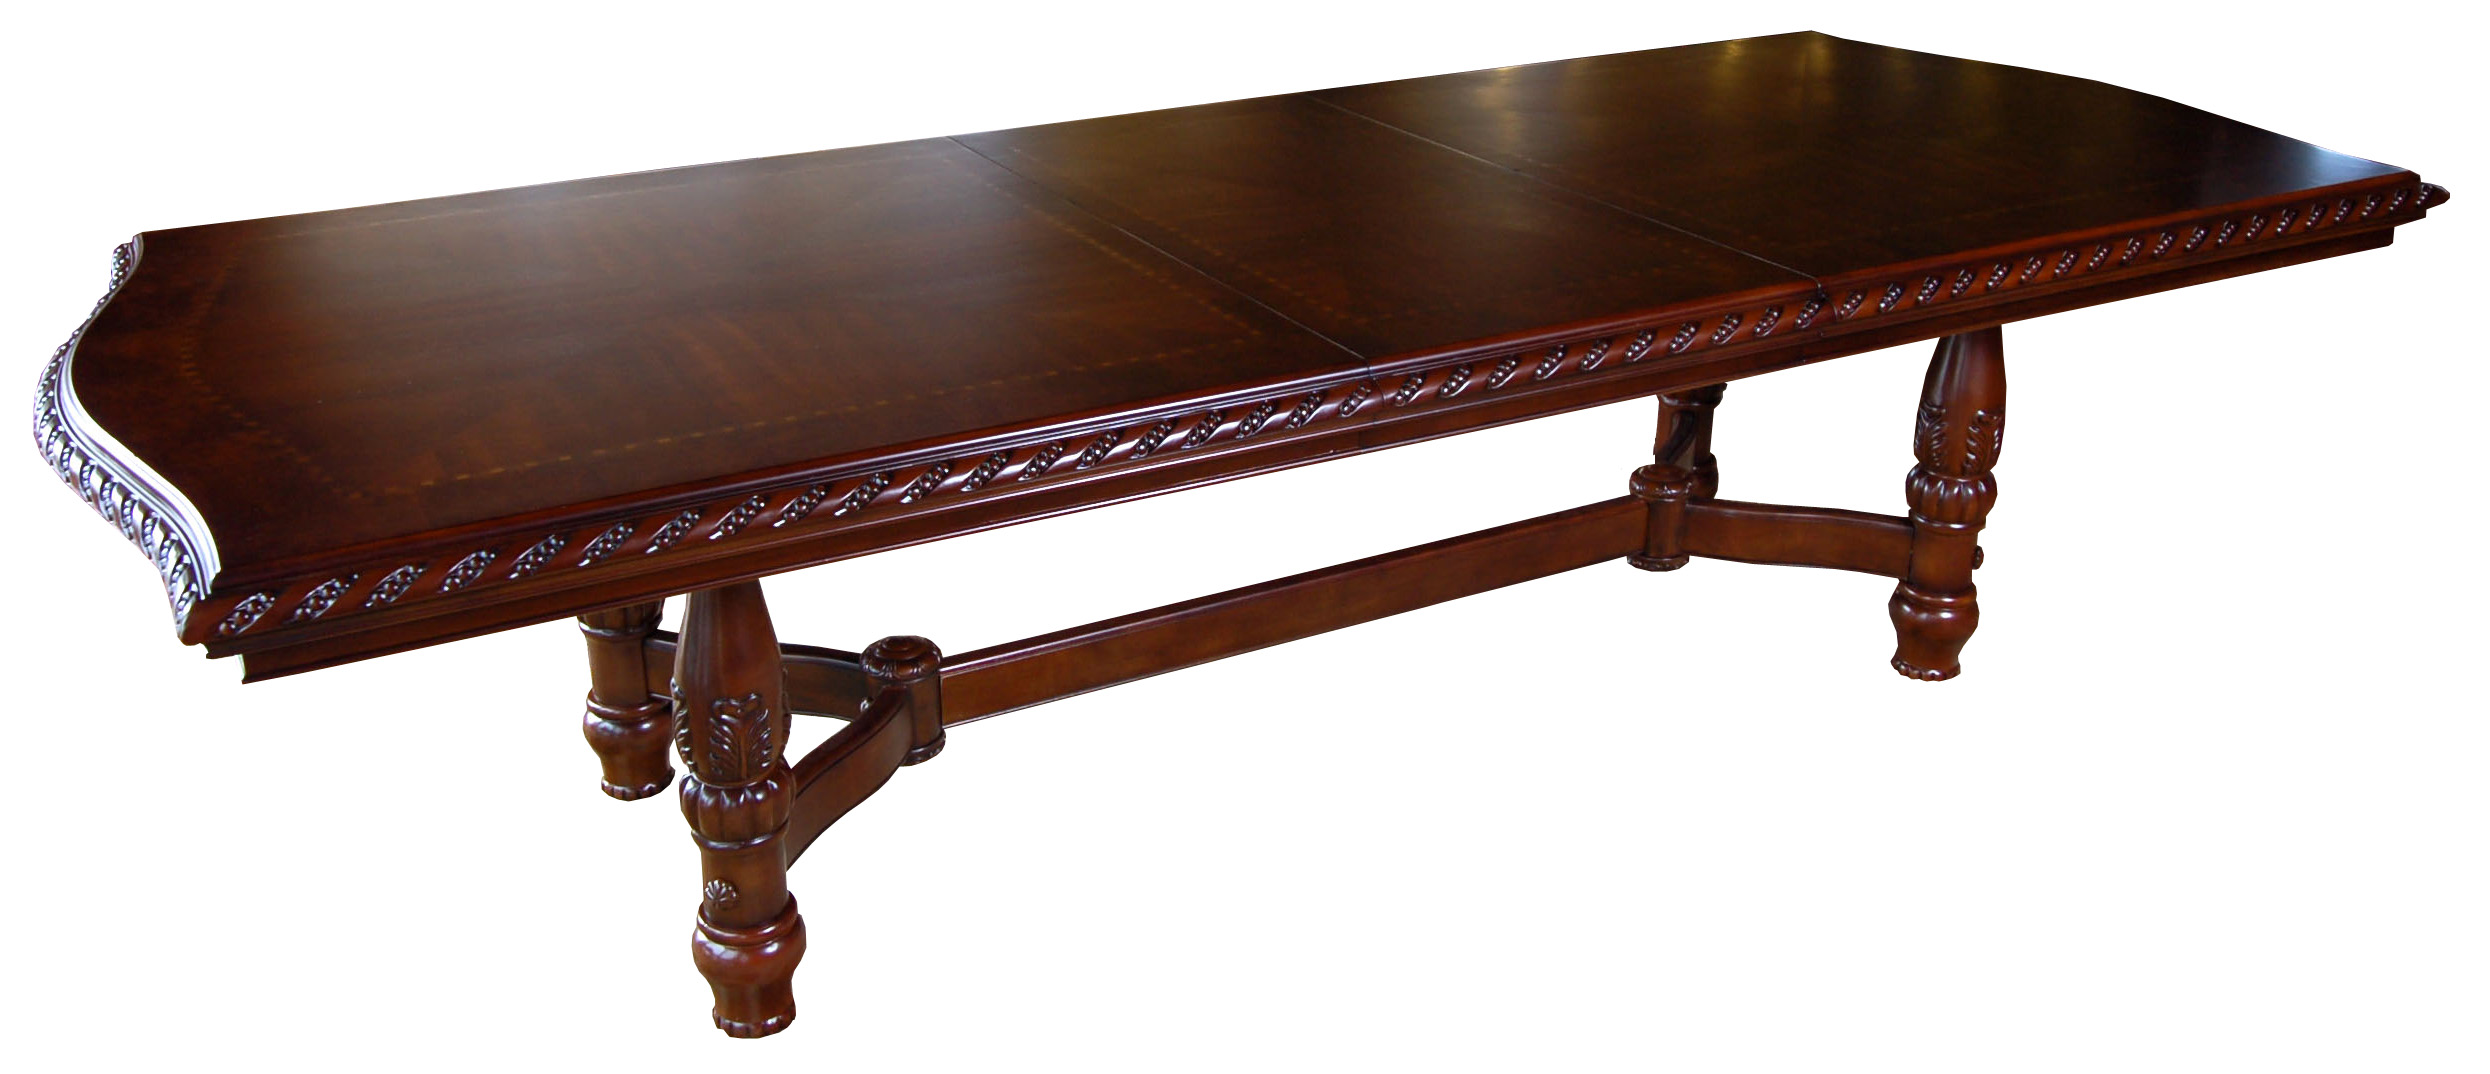 10 ft rectangular mahogany dining table ebay